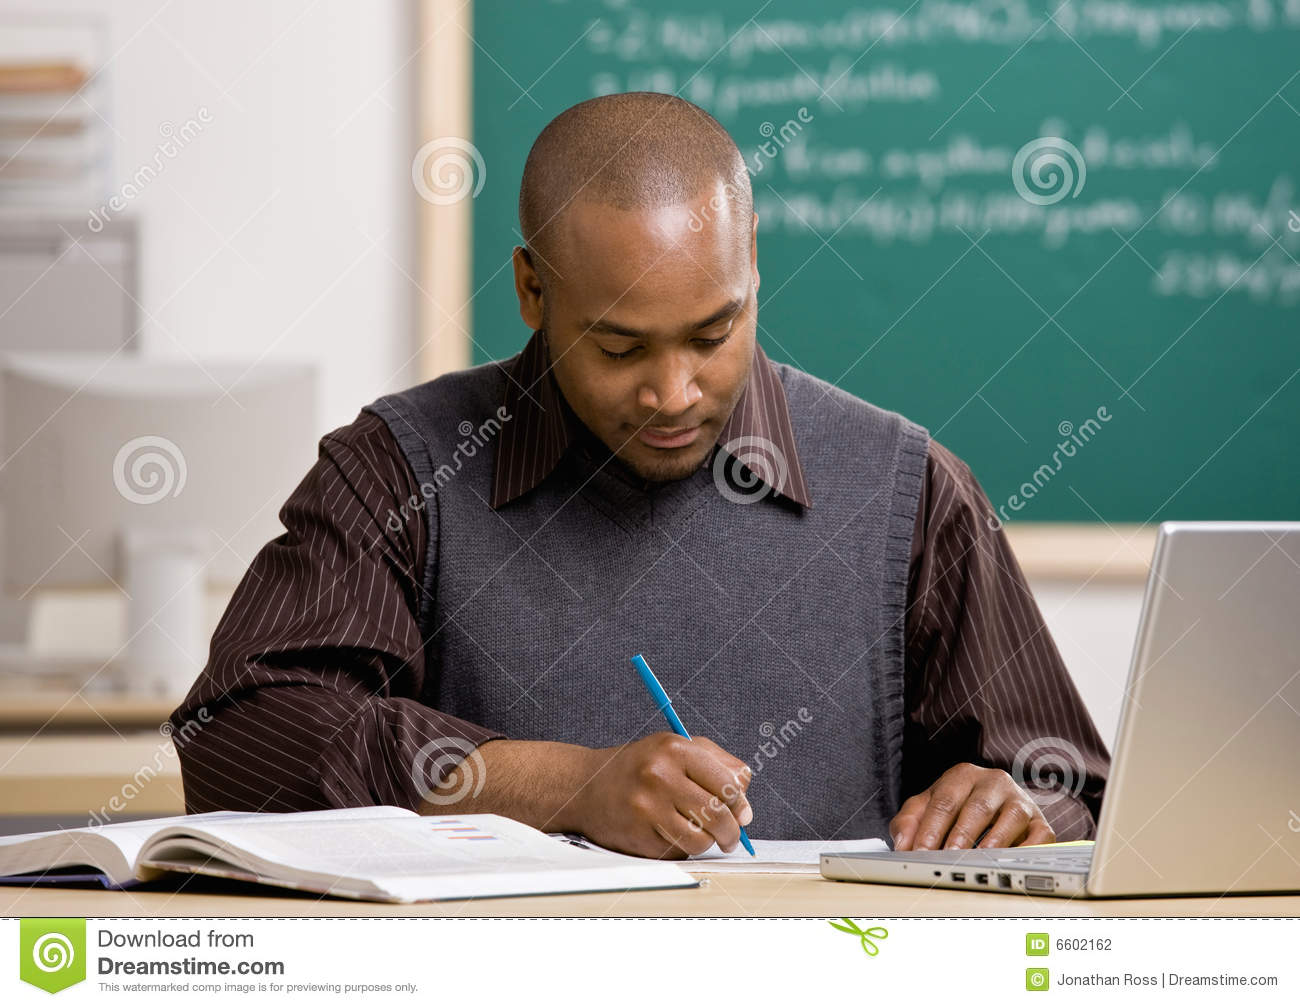 Essay teacher